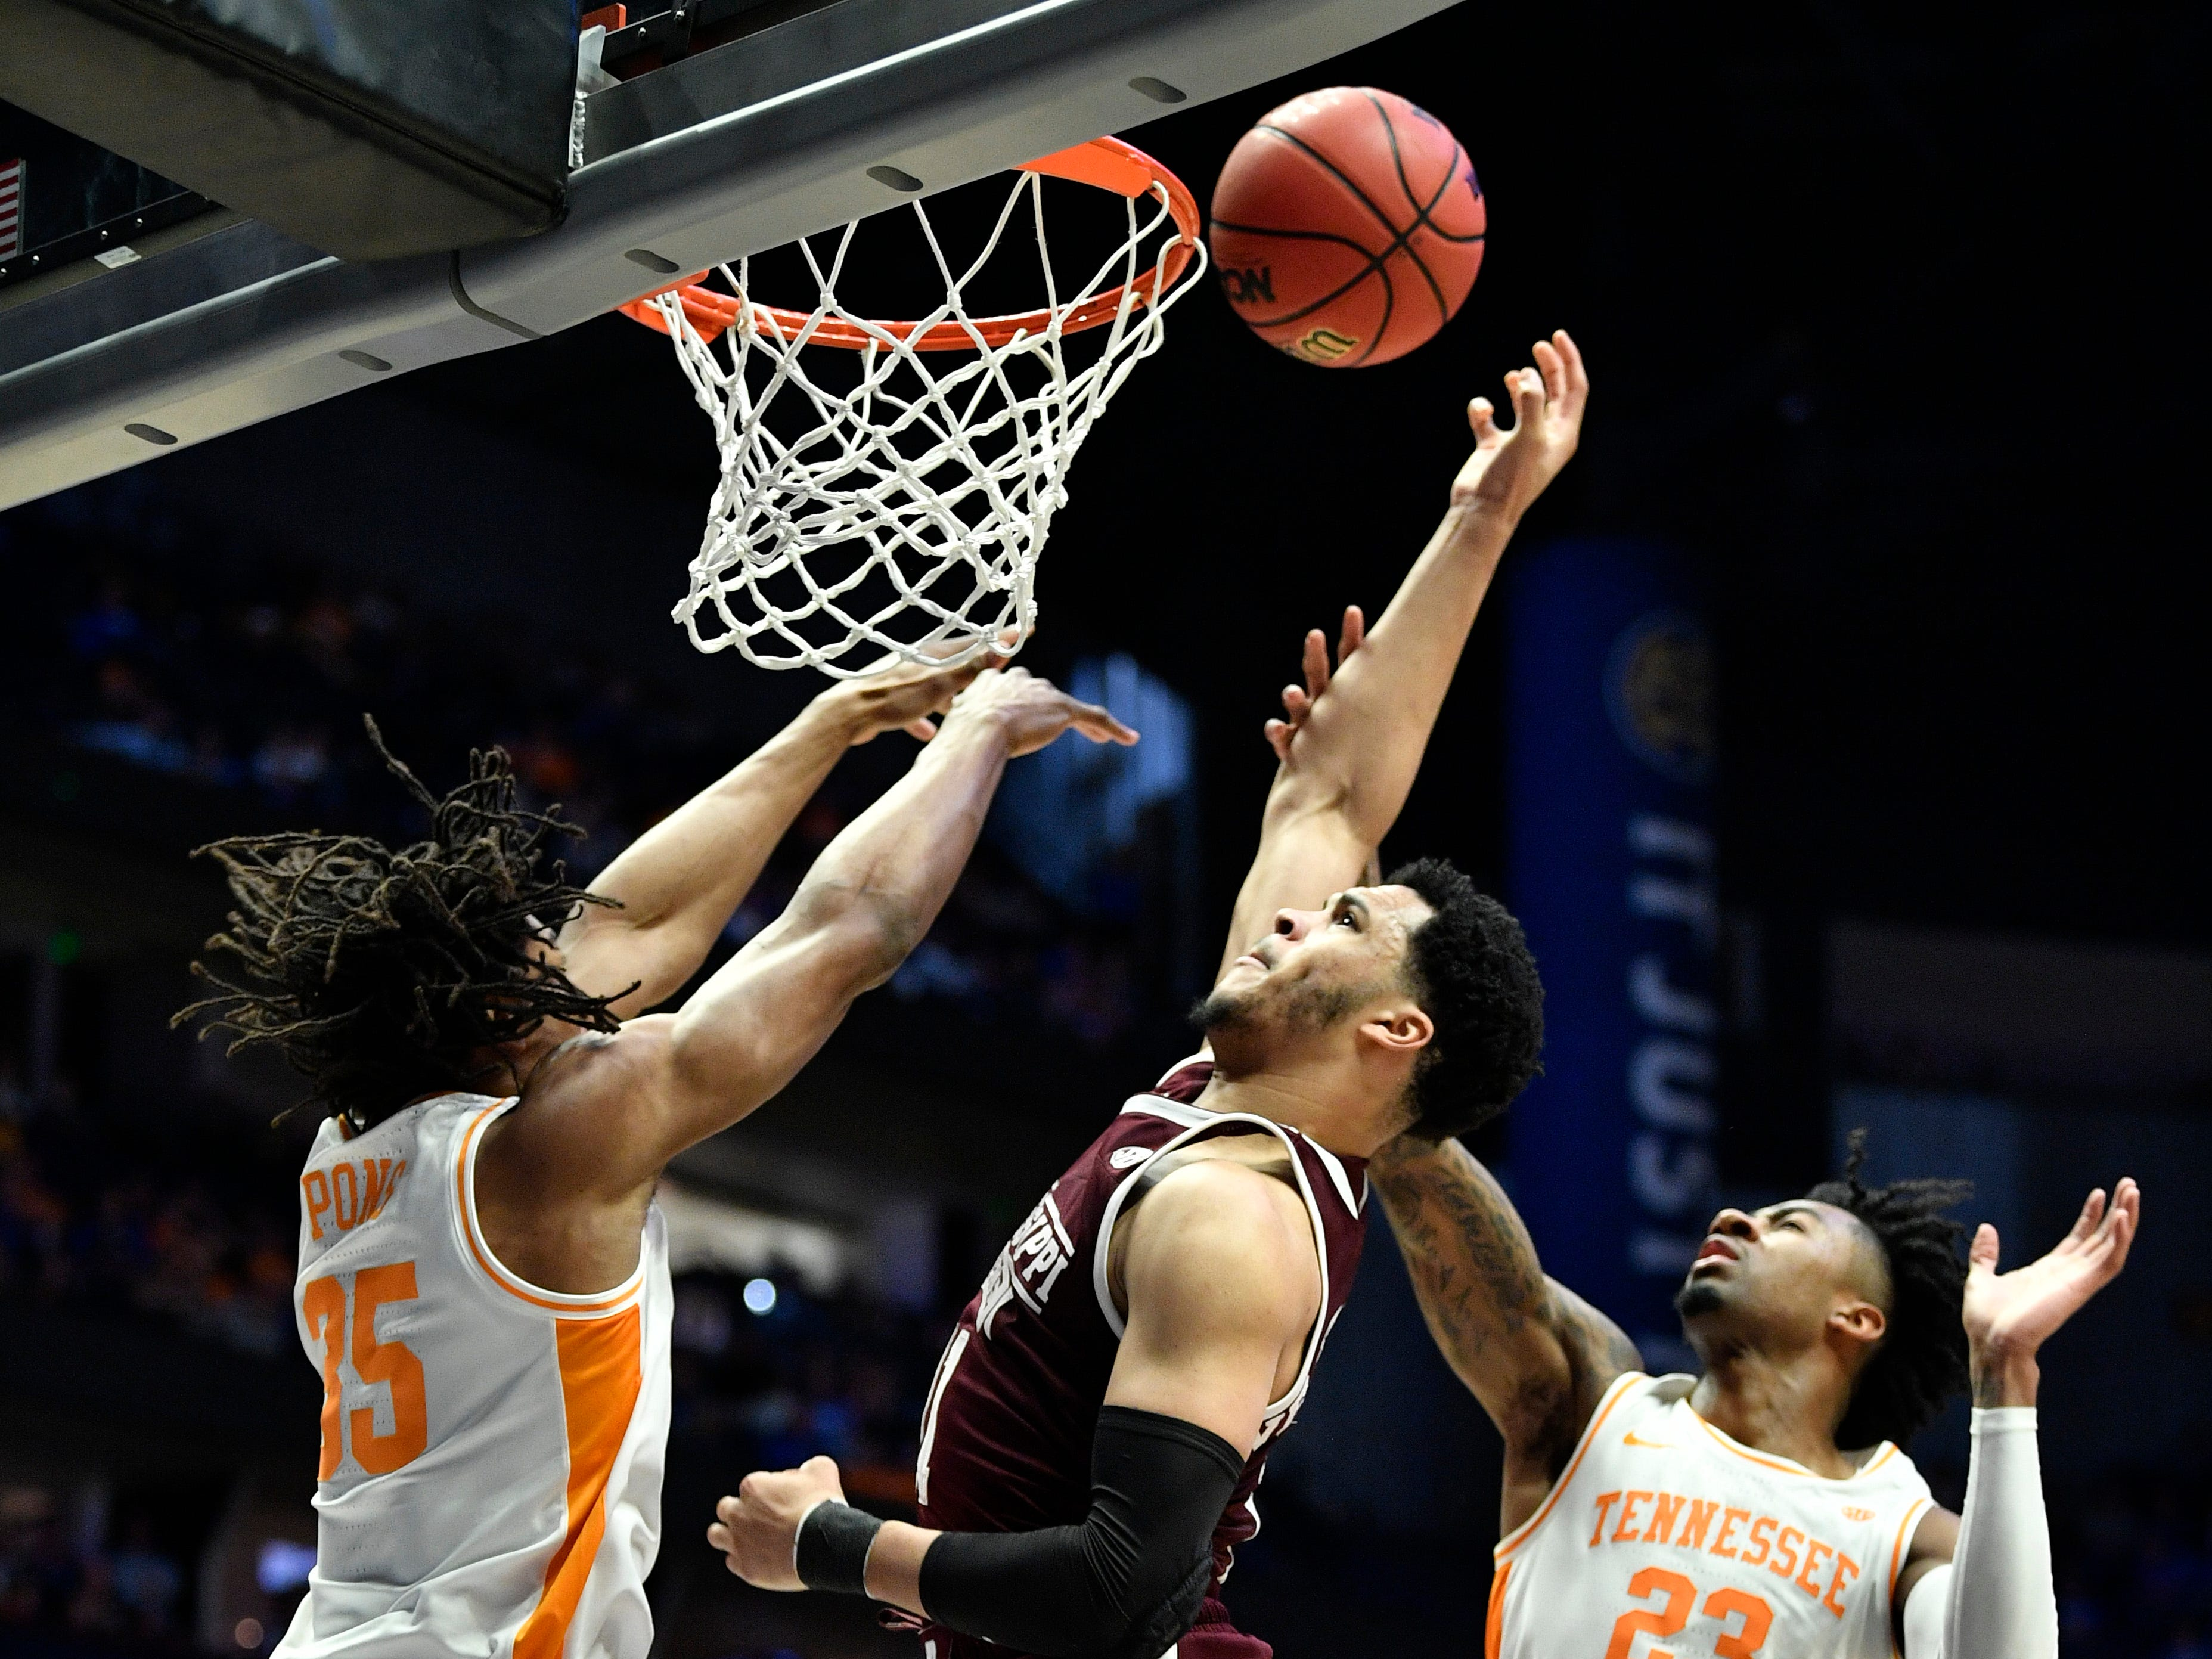 Mississippi State guard Quinndary Weatherspoon (11) goes up between Tennessee forward Yves Pons (35) and guard Jordan Bowden (23) during the second half of the SEC Men's Basketball Tournament game at Bridgestone Arena in Nashville, Tenn., Friday, March 15, 2019.